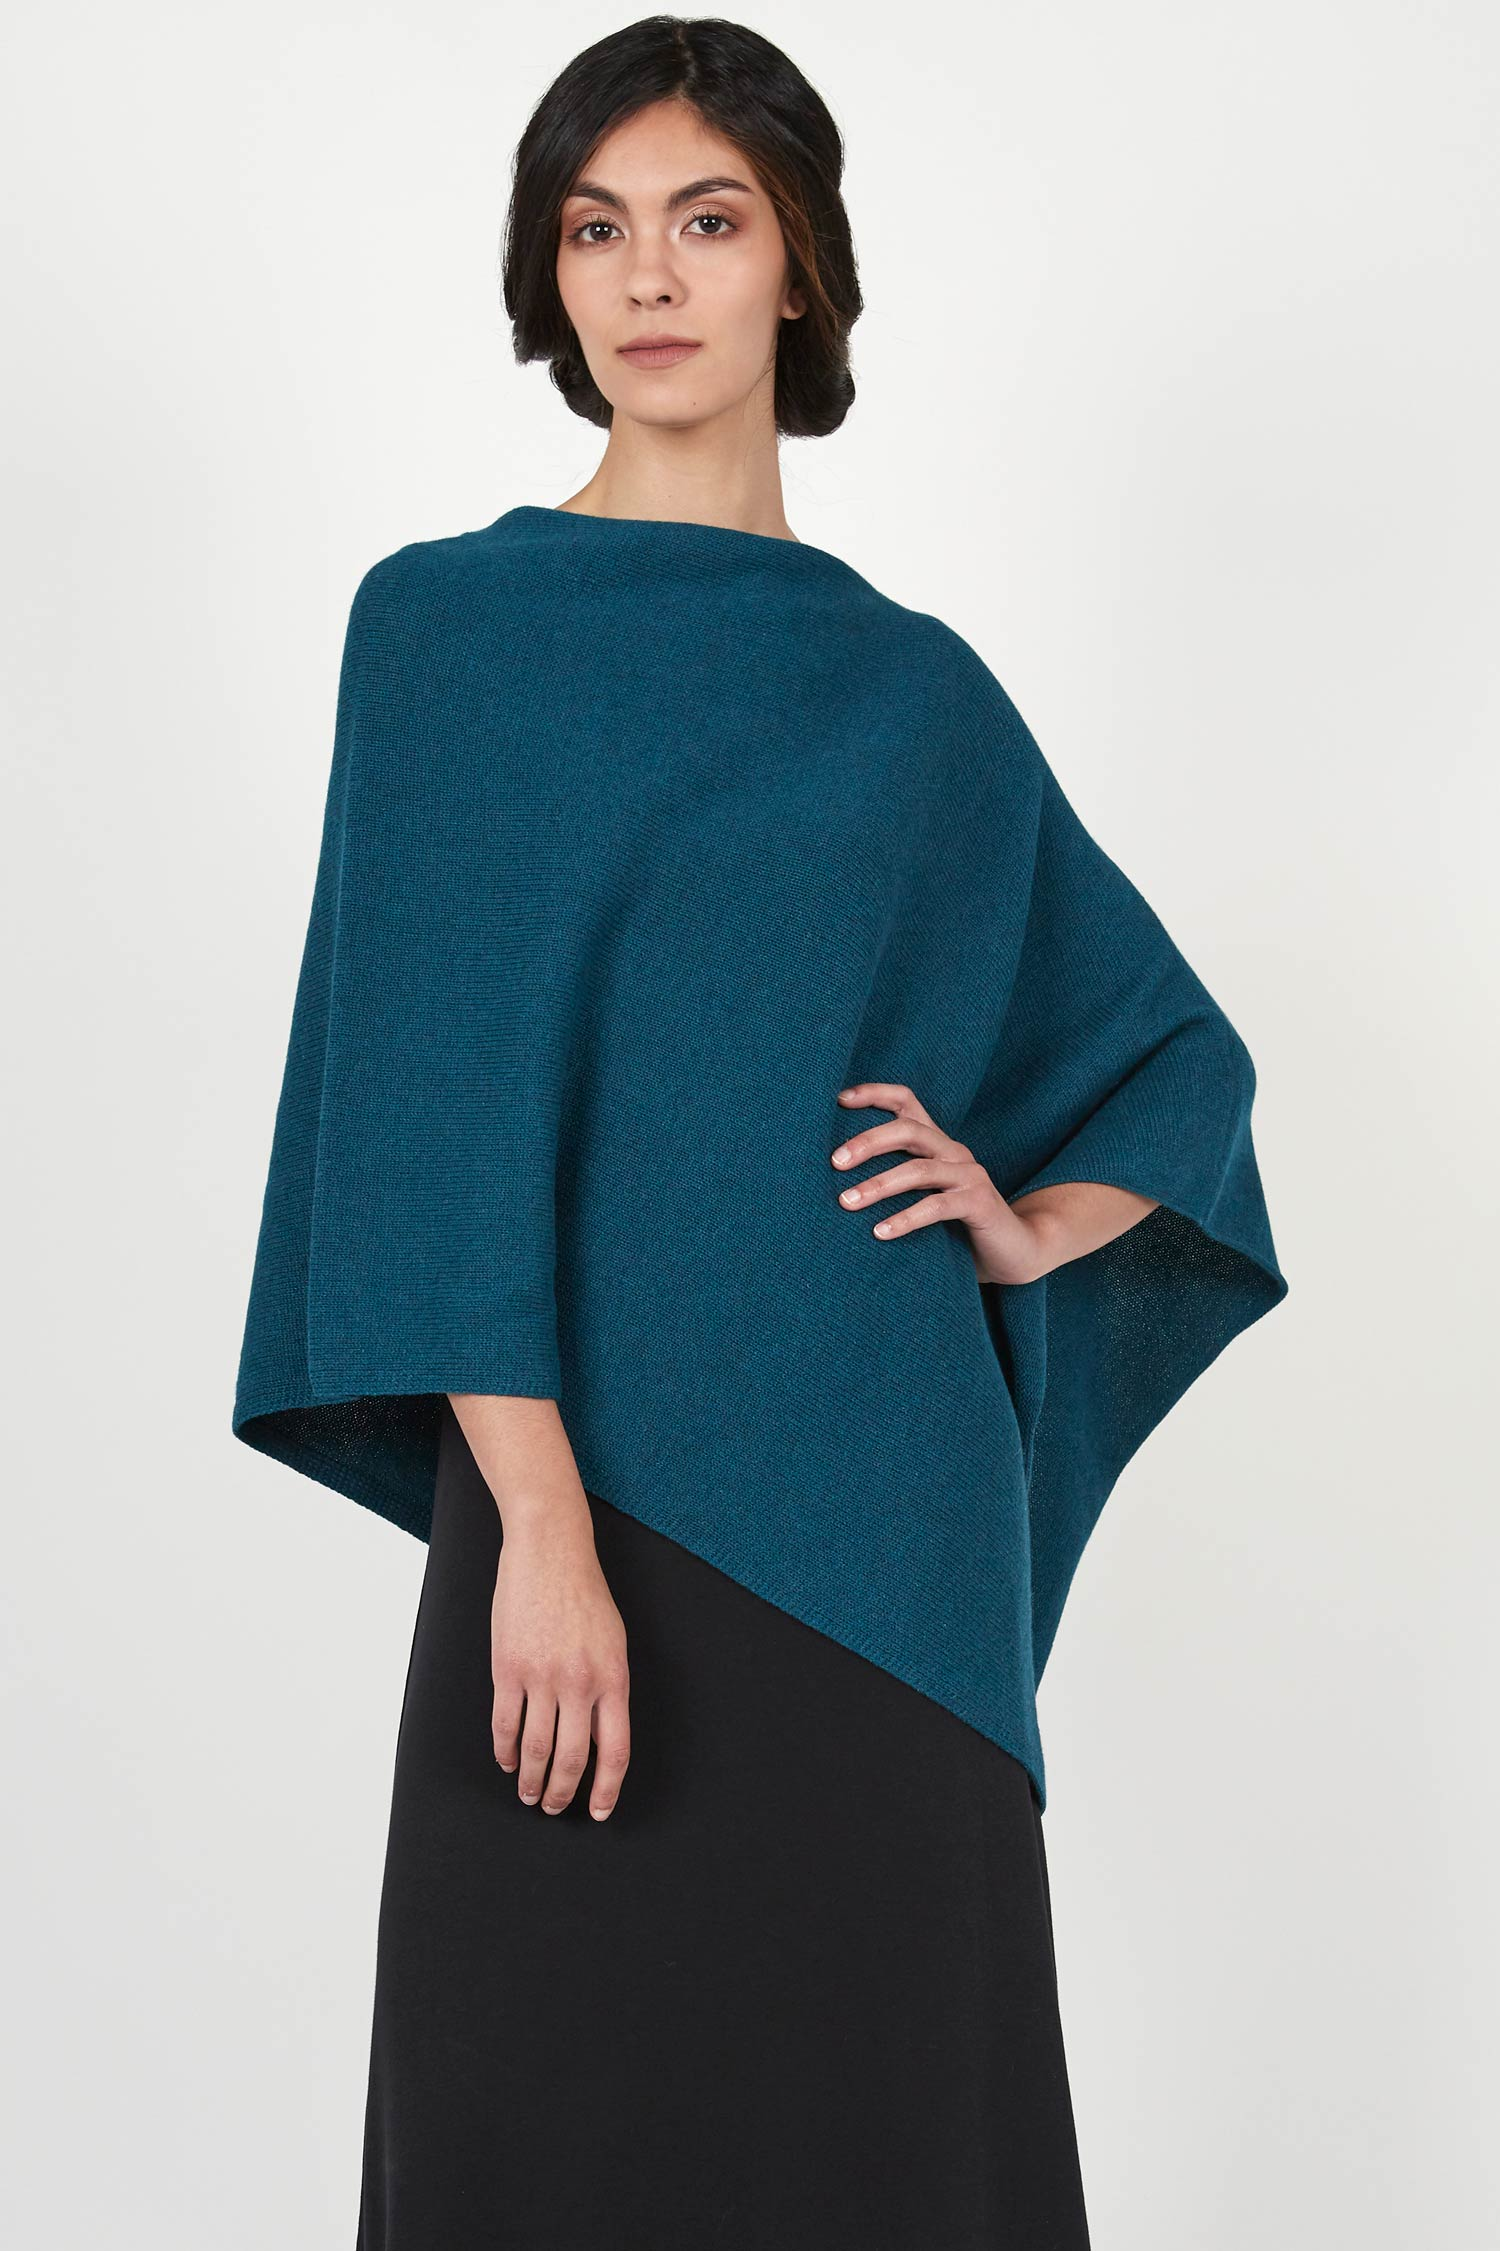 Womens Organic Cotton Ponchos | Essential Poncho - Indigenous | Jade Blue